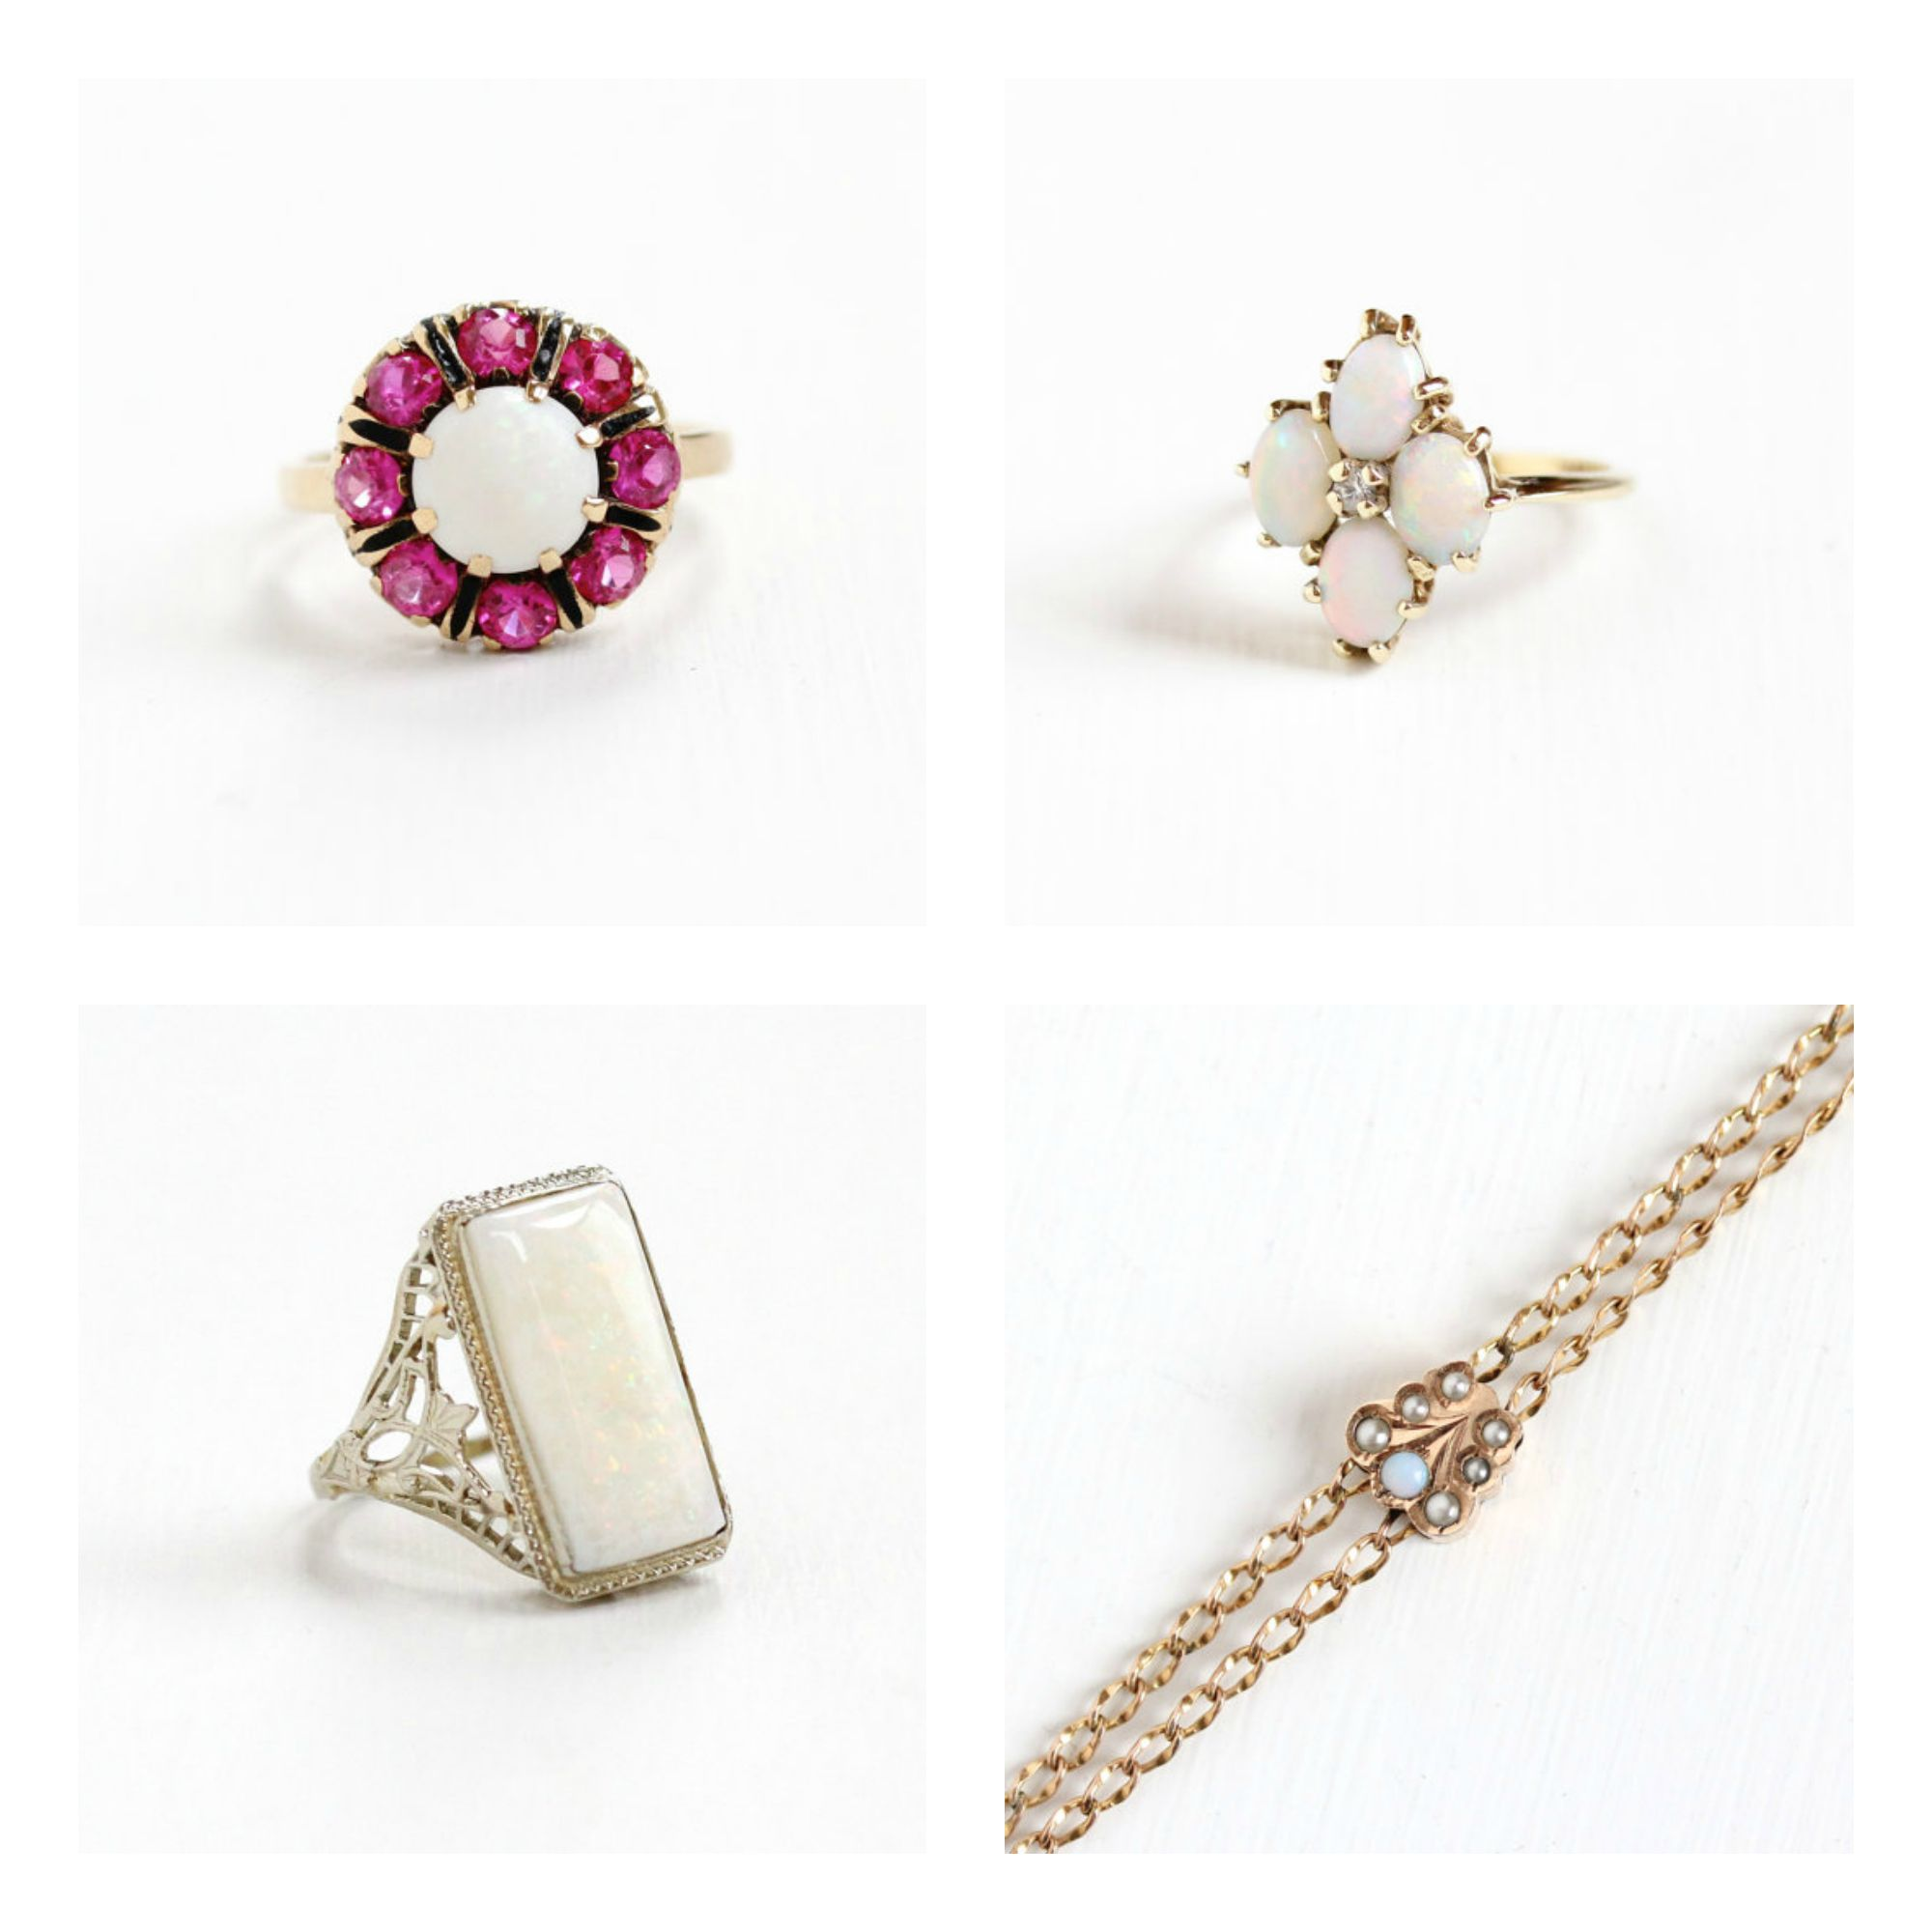 Top left :Vintage Opal & Created Ruby  Ring , Top right : Vintage Opal & Created White Spinel  Ring , Bottom left : Antique Opal Filigree  Ring Bottom right, : Antique Opal Seed Pearl Watch Chain  Necklace